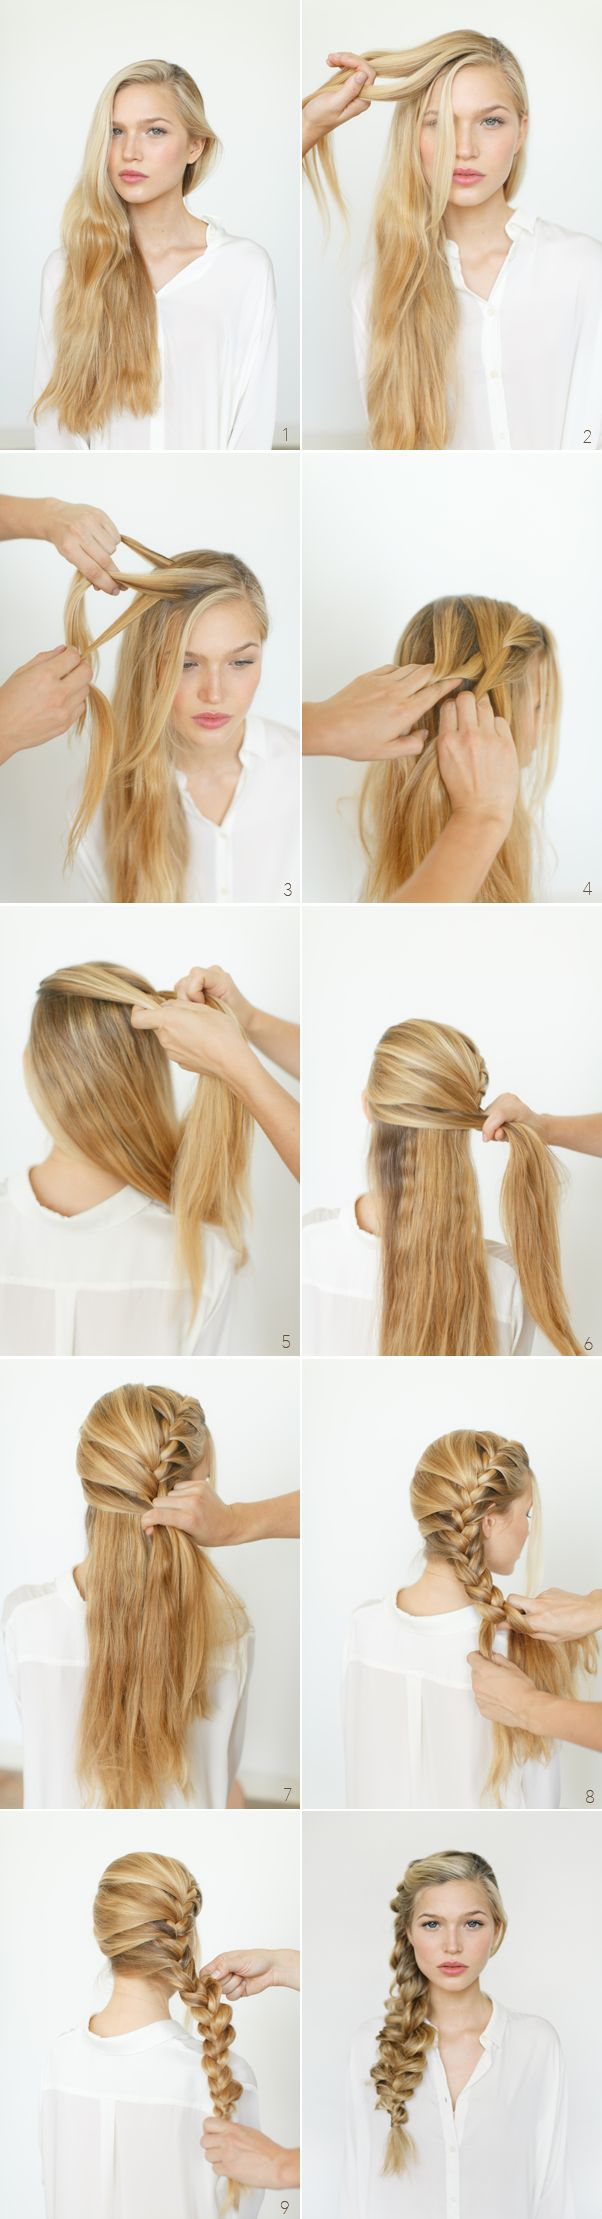 side braid. http://www.cuetheconversation.com/